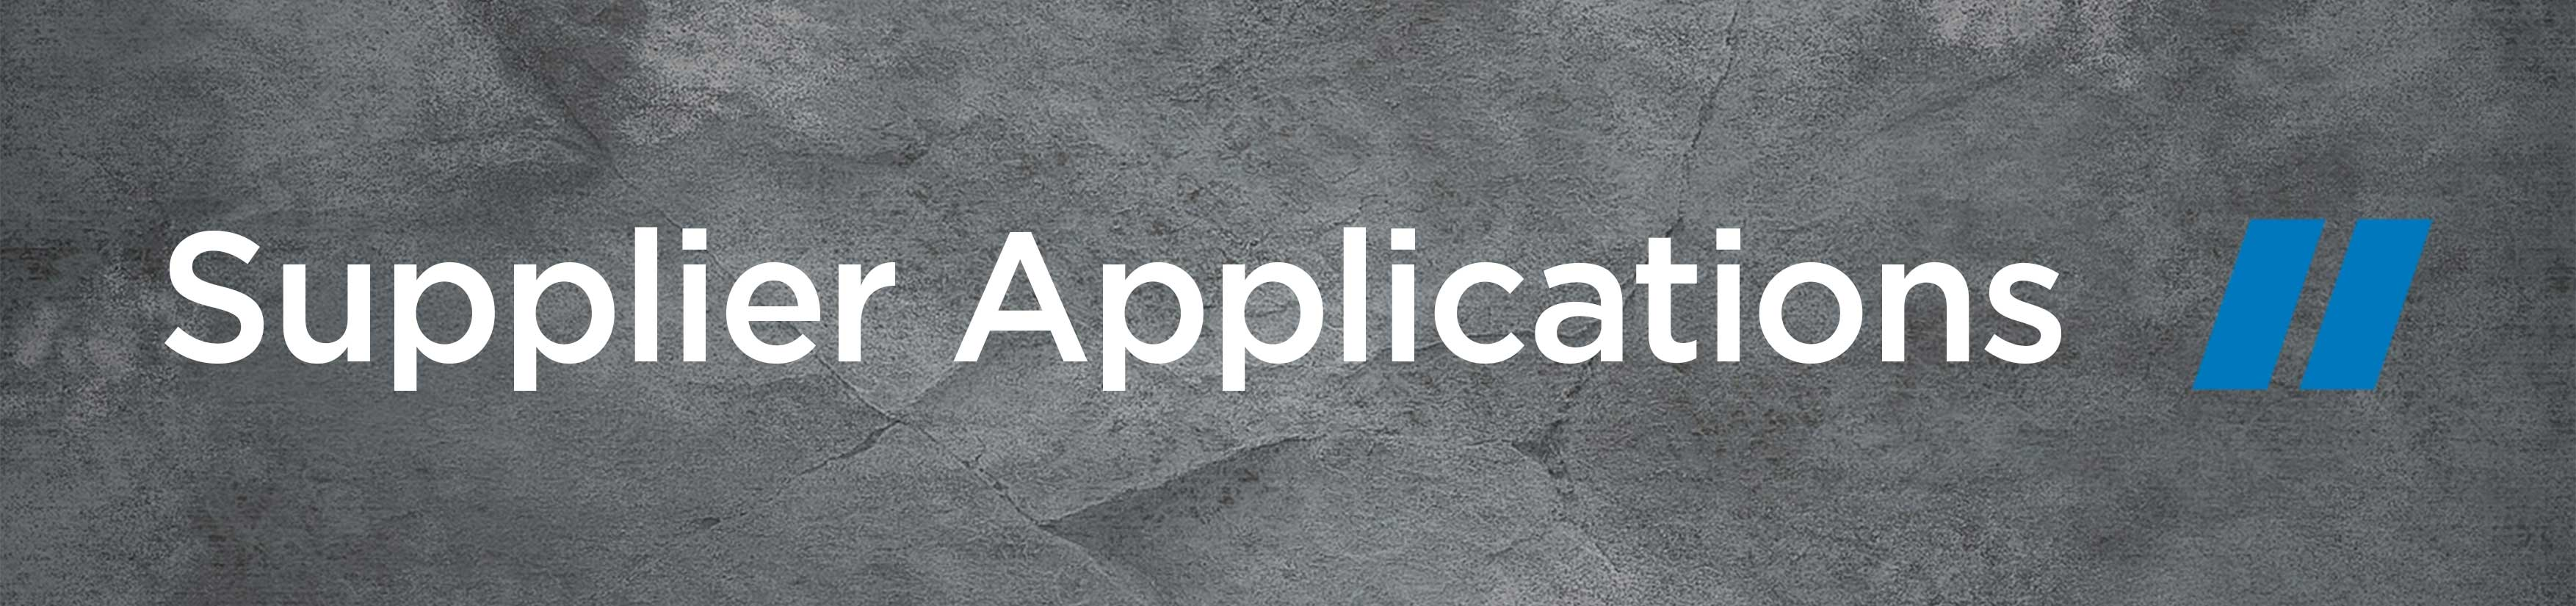 Supplier Applications